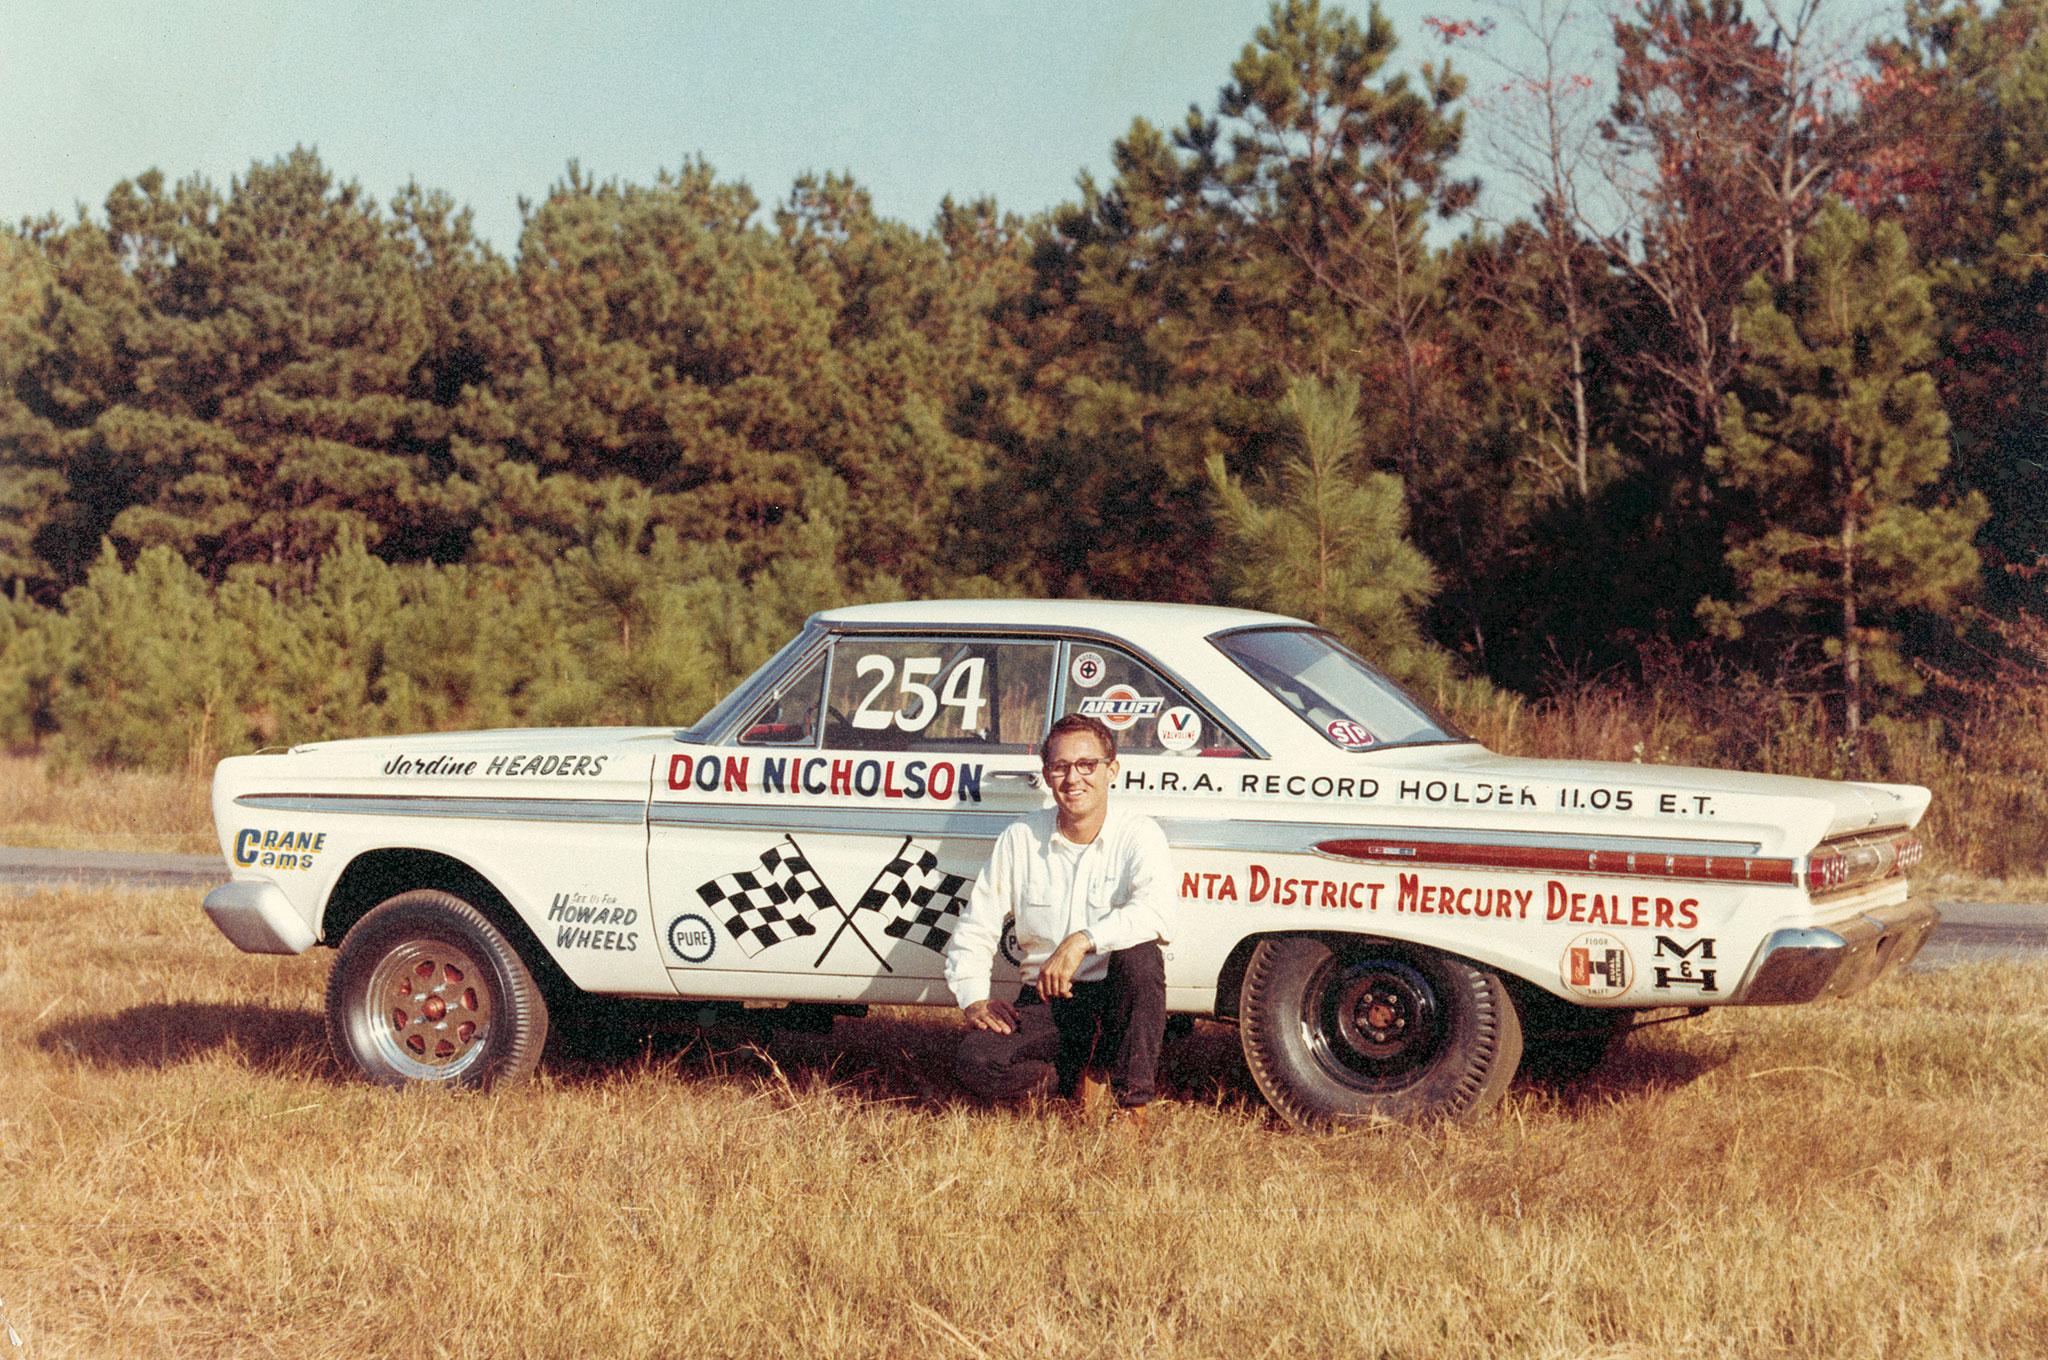 Dyno's 1964 Mercury Comet ran in A/FX running against such luminaries as Ronnie Sox, who also was driving a 1964 Comet. Sox & Martin's Mopar affiliation would come the following year.